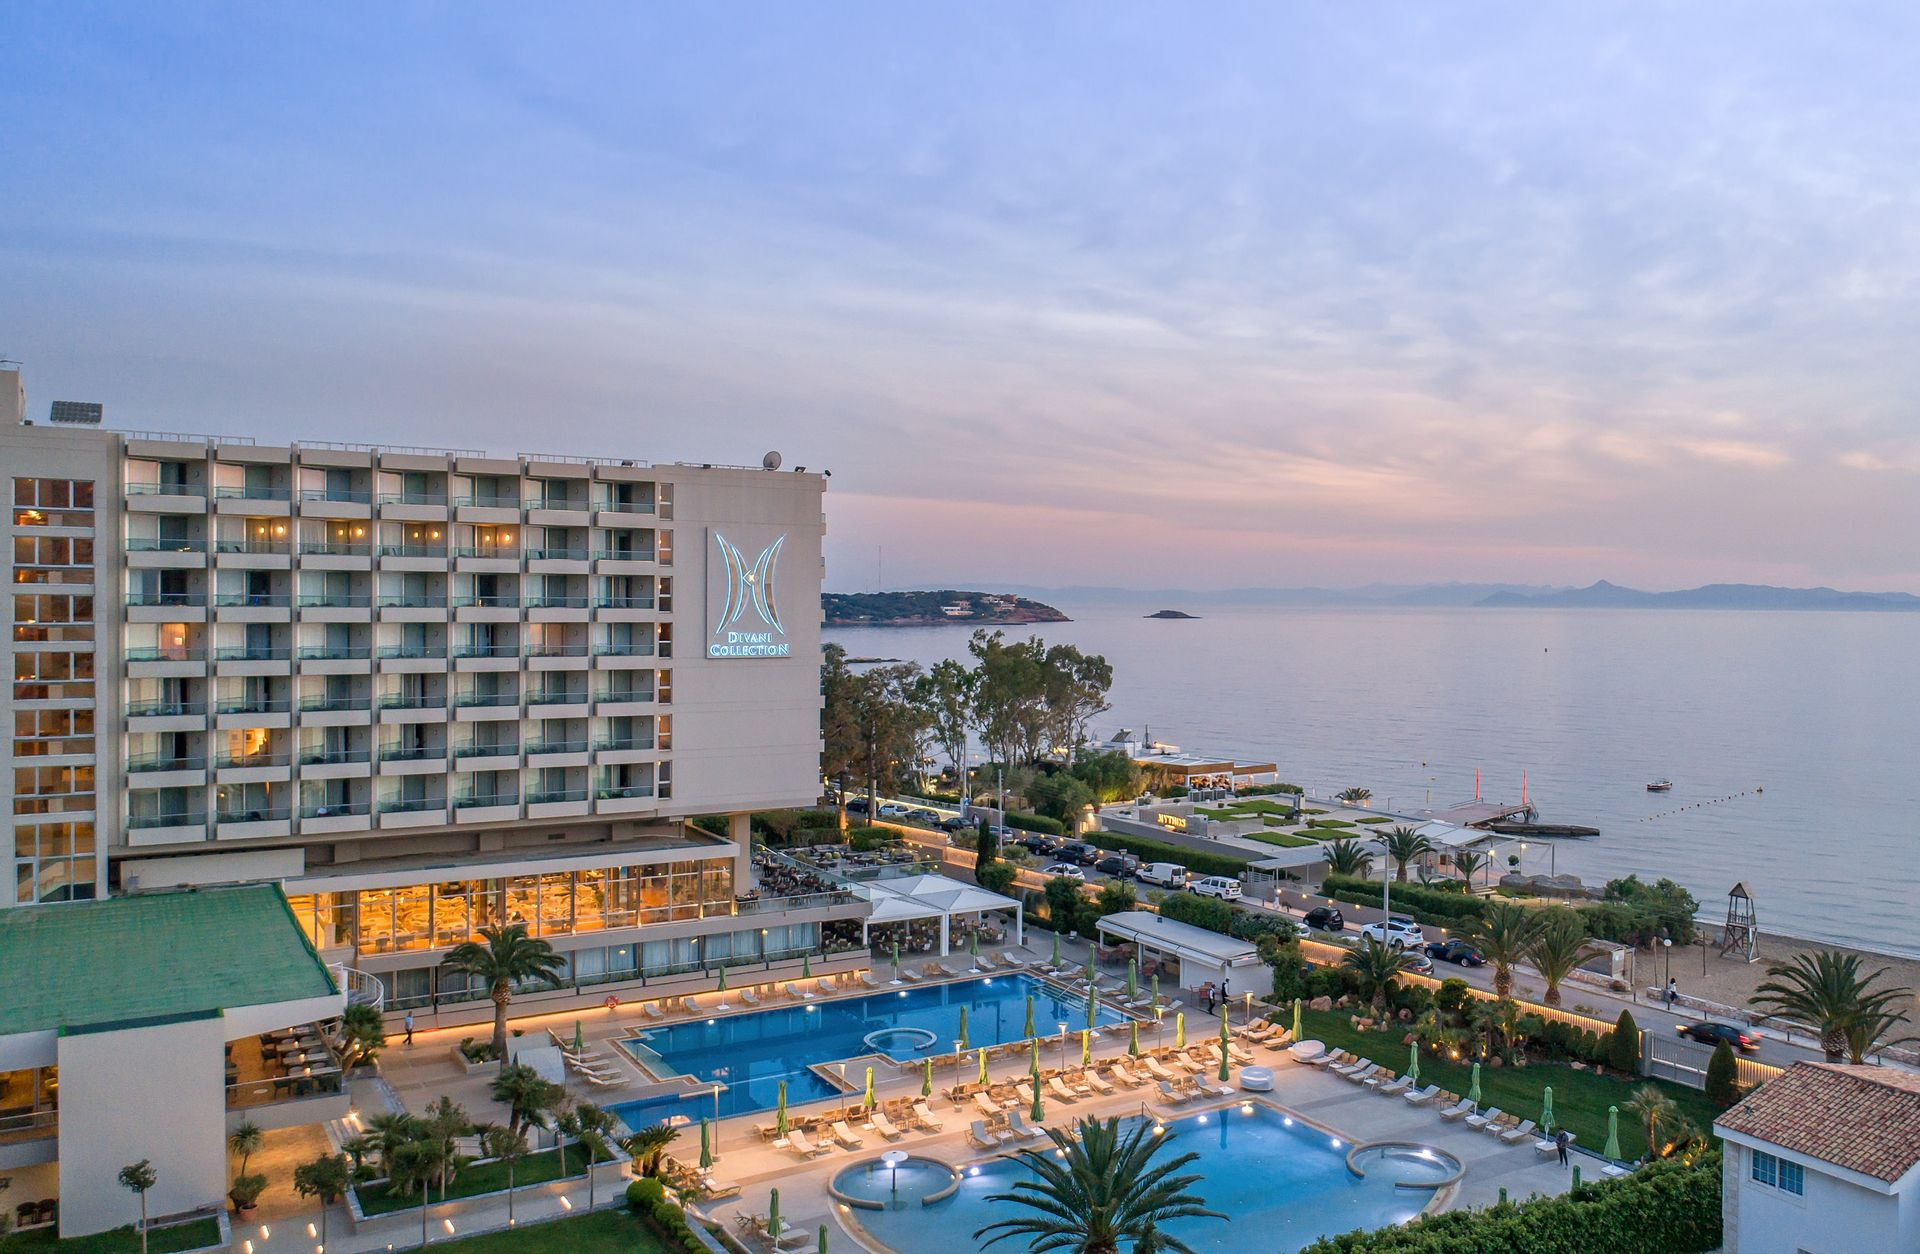 Divani Apollon Palace & Thalasso | Athens Riviera - Offers - Ultimate Staycation at the Athenian Riviera